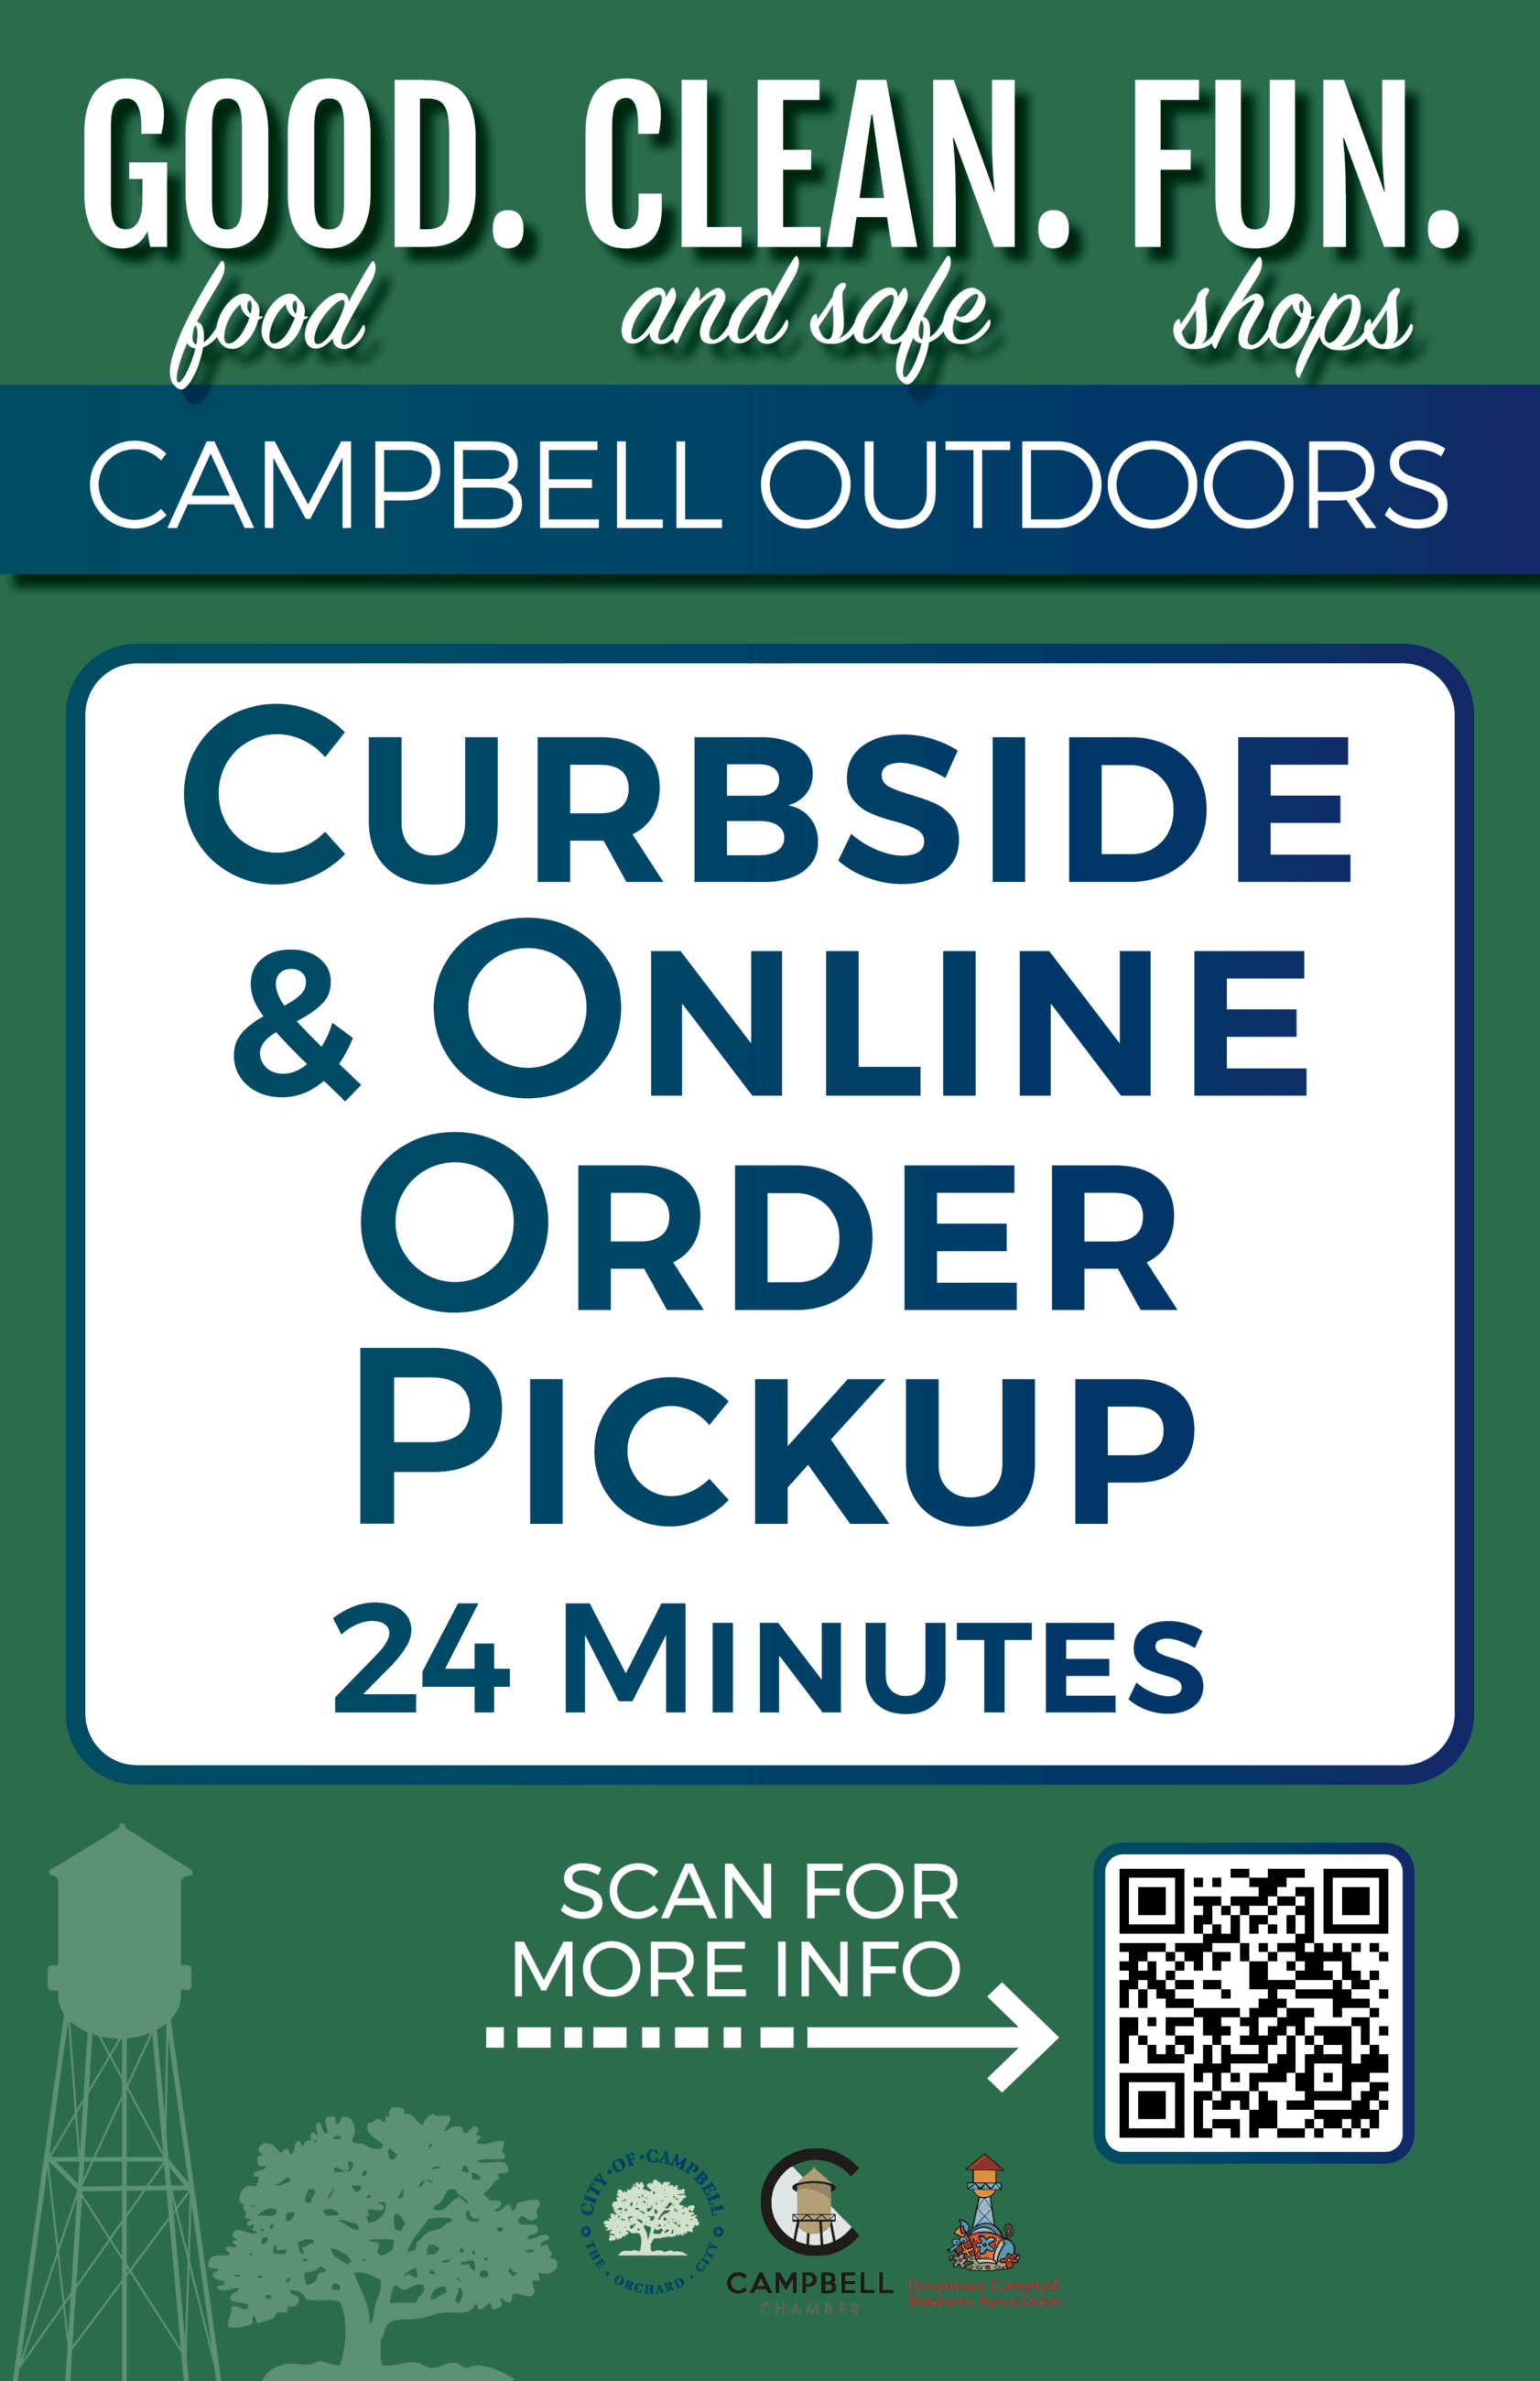 Curbside & Online Order Pickup Parking Sign